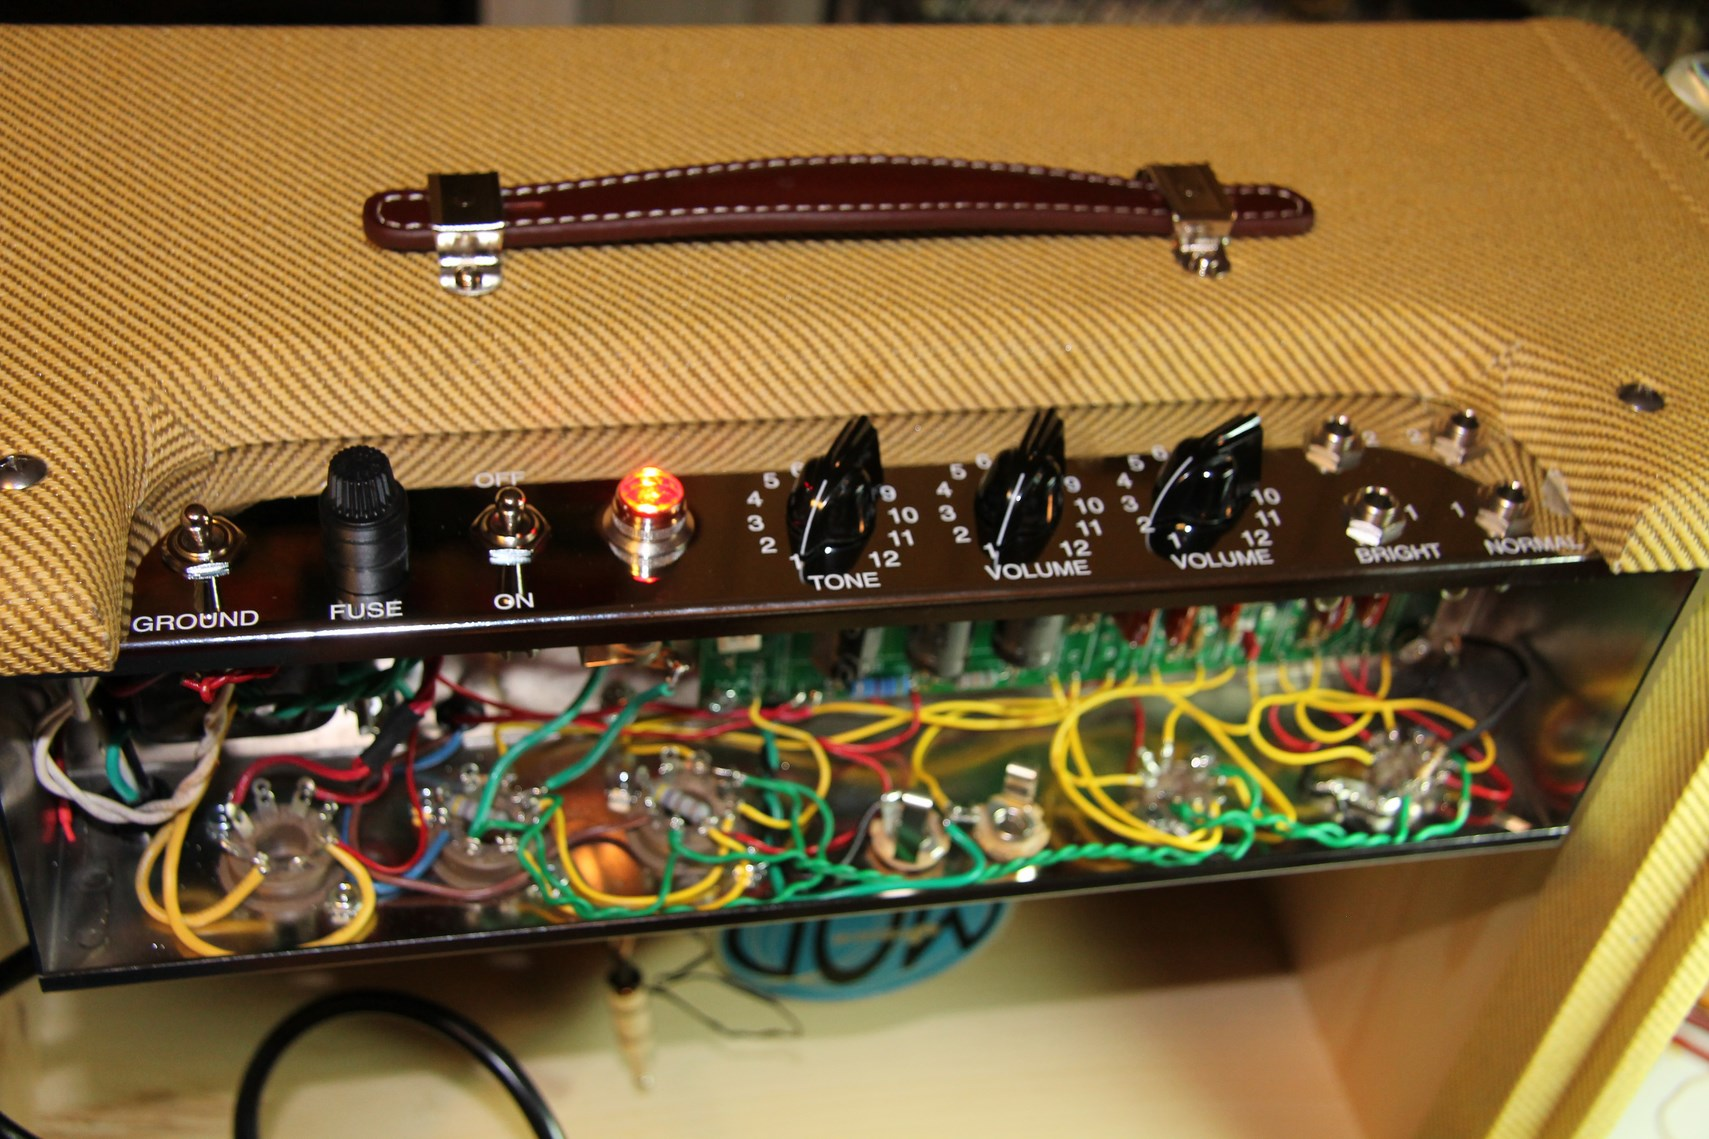 Welcome To Fender Strat Wiring Very Good Kit I Worked With Confidence Due Your Thoughtful Packaging And Instruction Thanks For Making It Right Zero Mistakes By The Way Hehehe